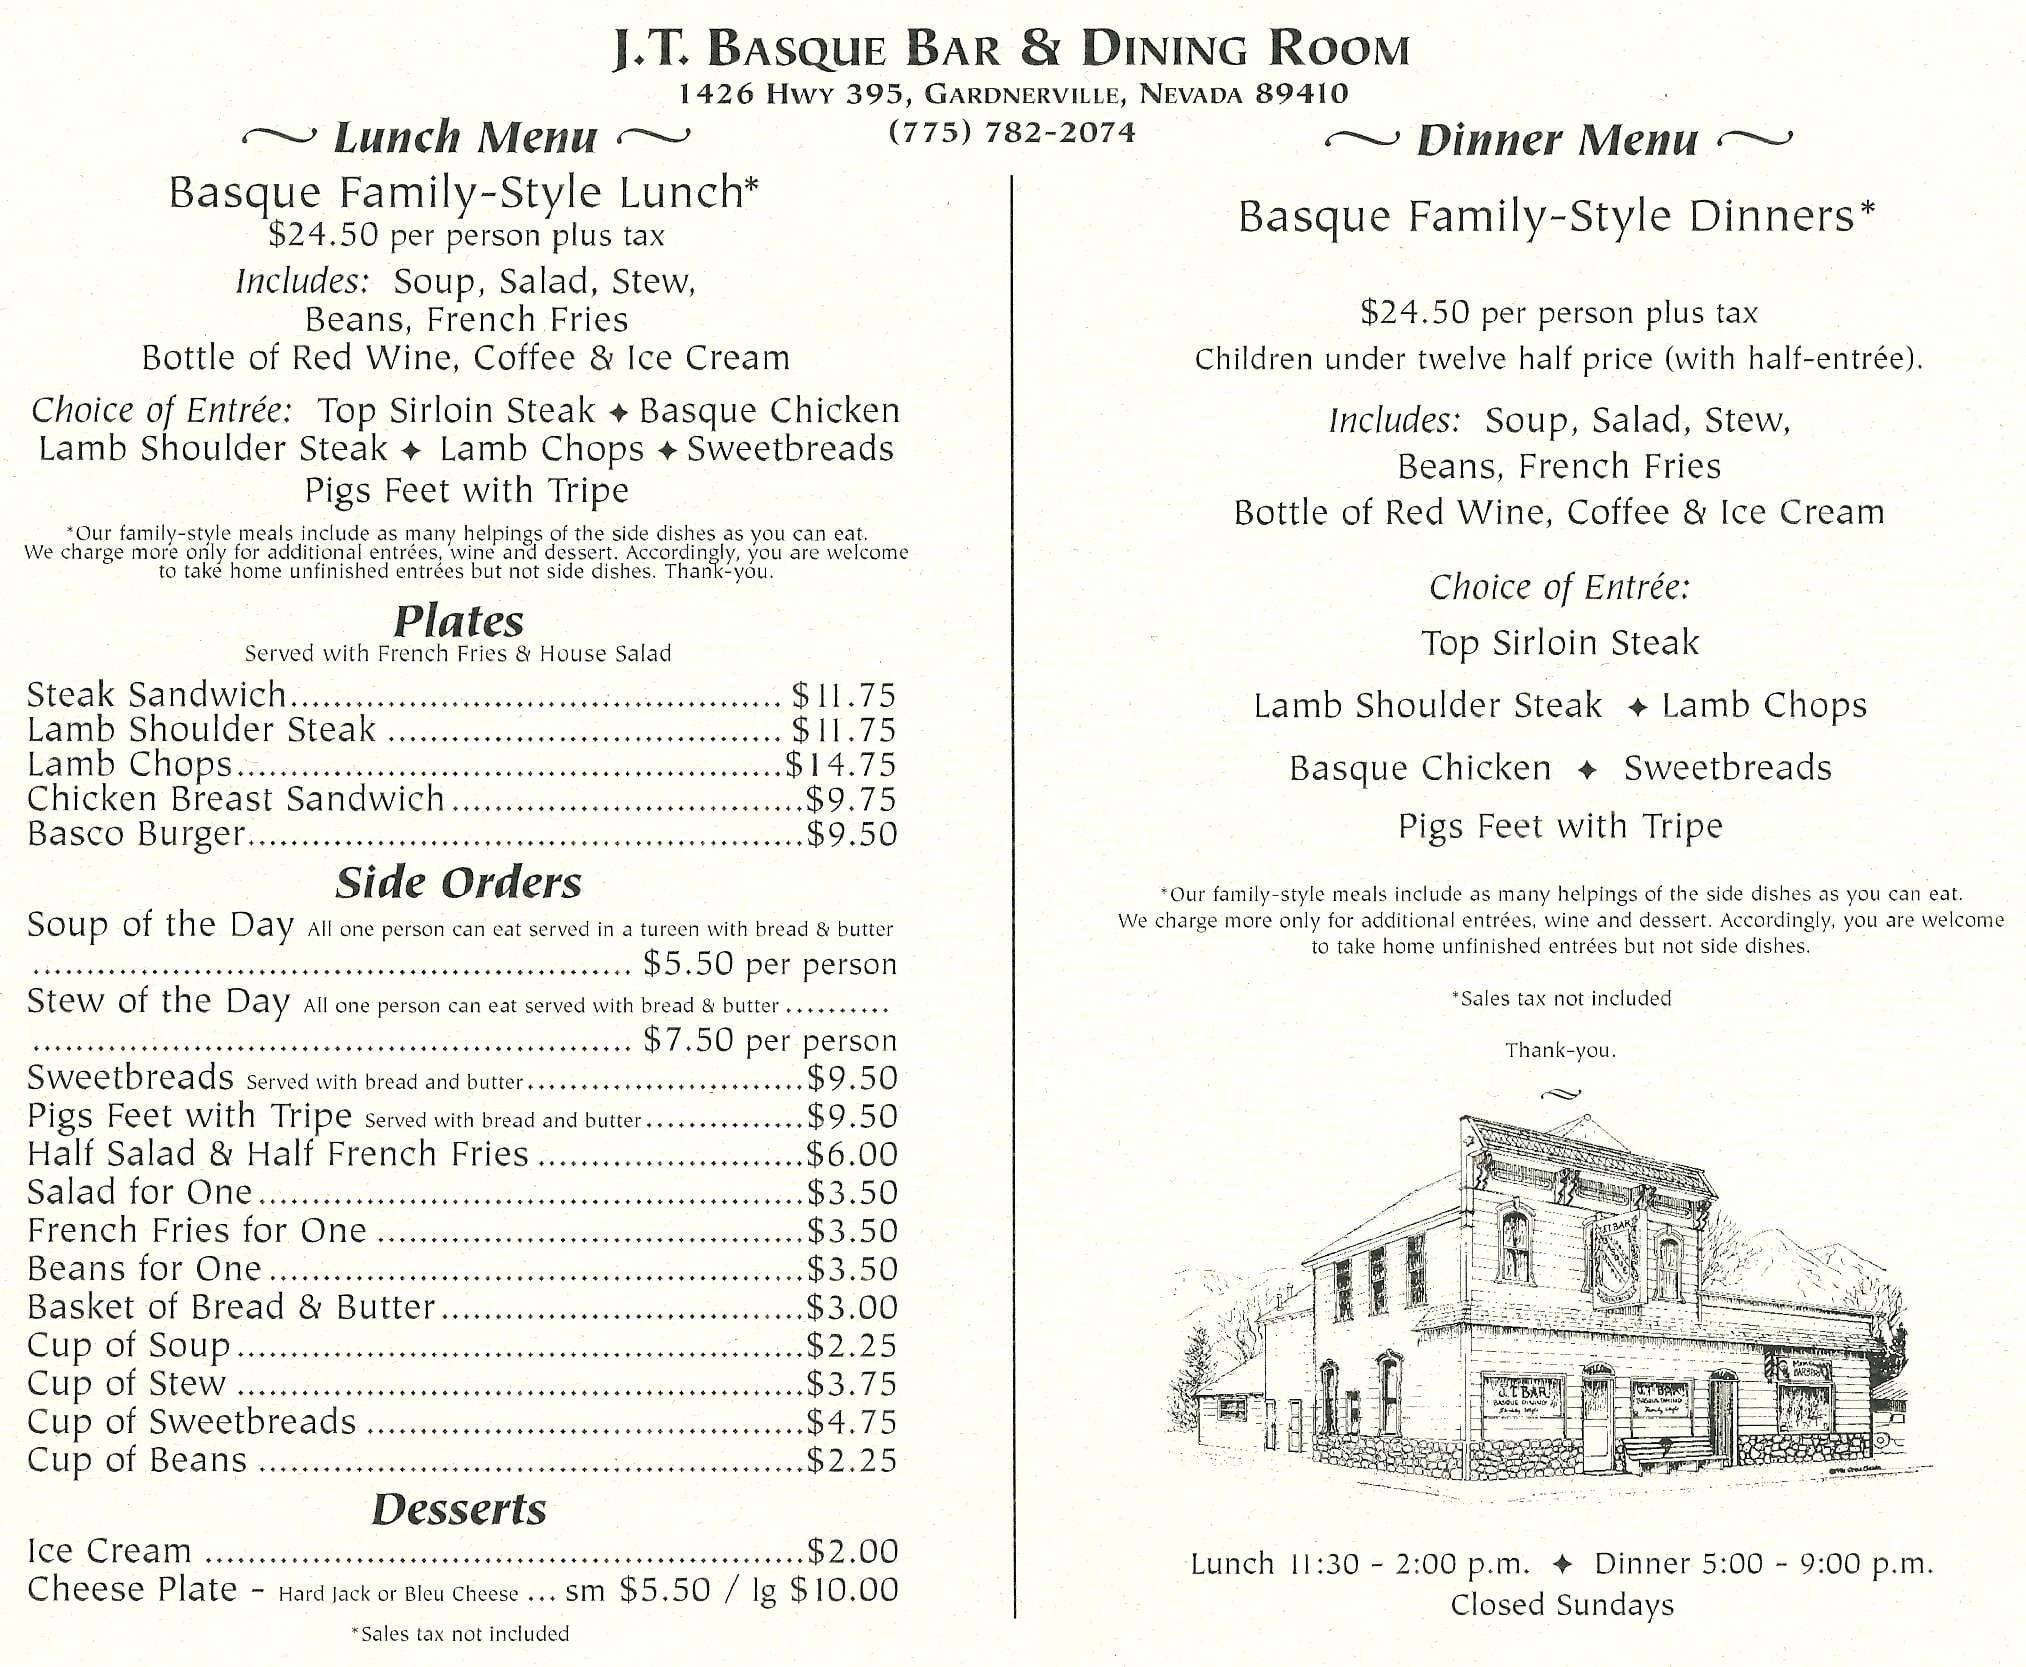 J T Basque Wine Bar Dining Room Gardnerville Menu